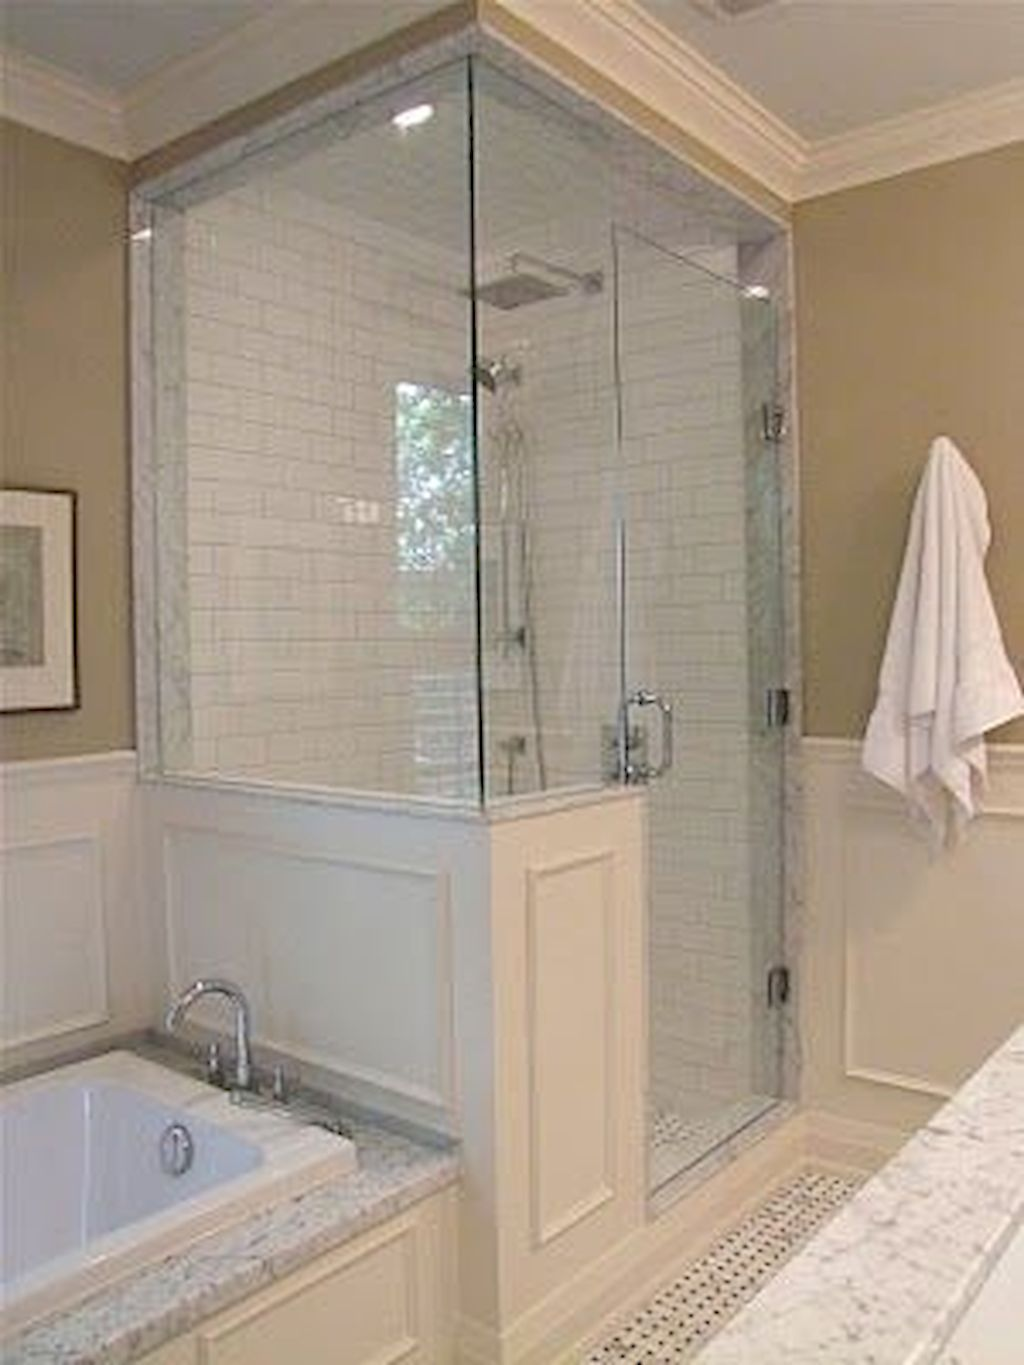 Adorable 40 Fresh Small Master Bathroom Remodel Ideas On A Budget Amazing Small Master Bathroom Designs Design Inspiration